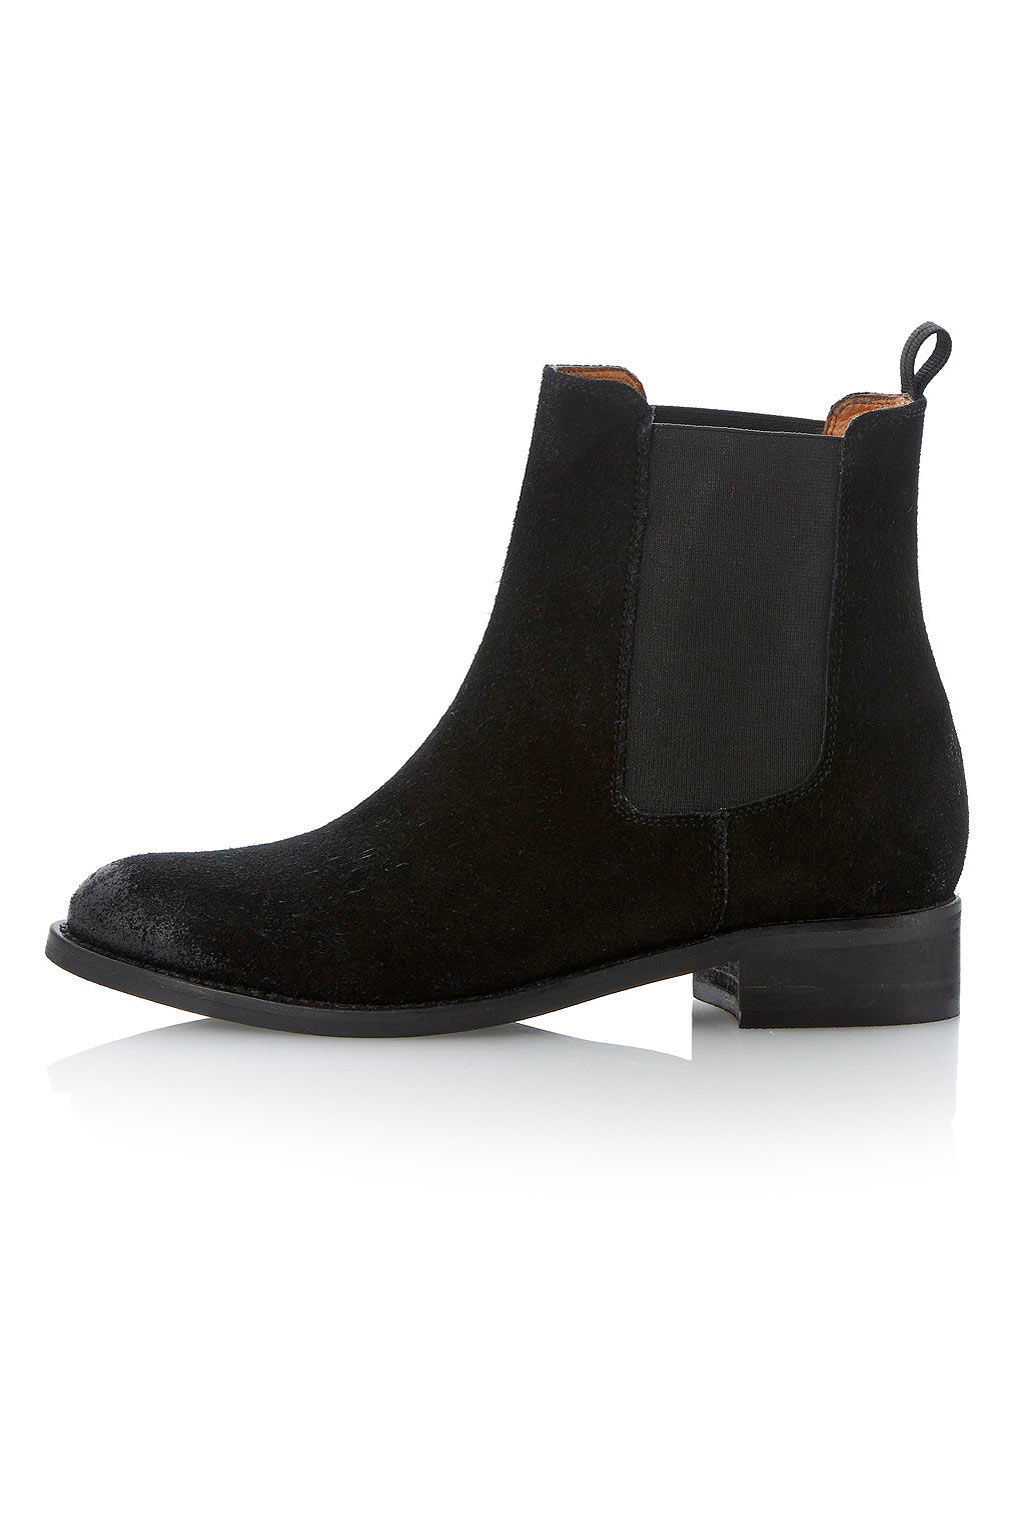 topshop pearson suede chelsea ankle boots by bertie in